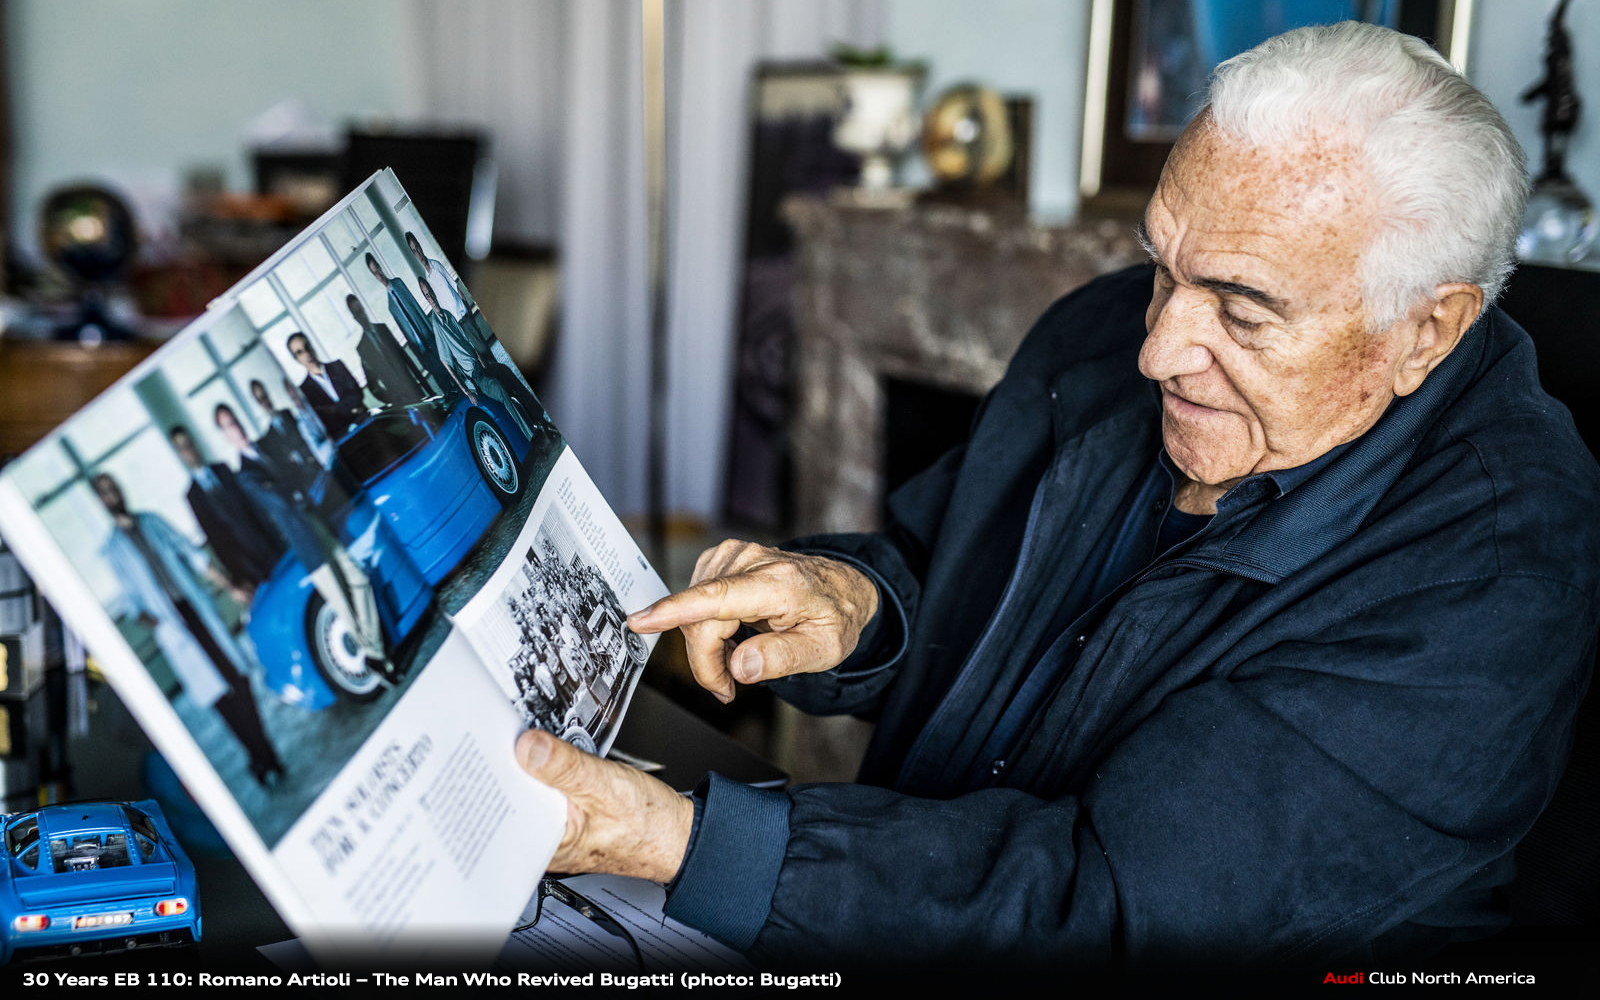 30 Years EB 110: Romano Artioli – The Man Who Revived Bugatti